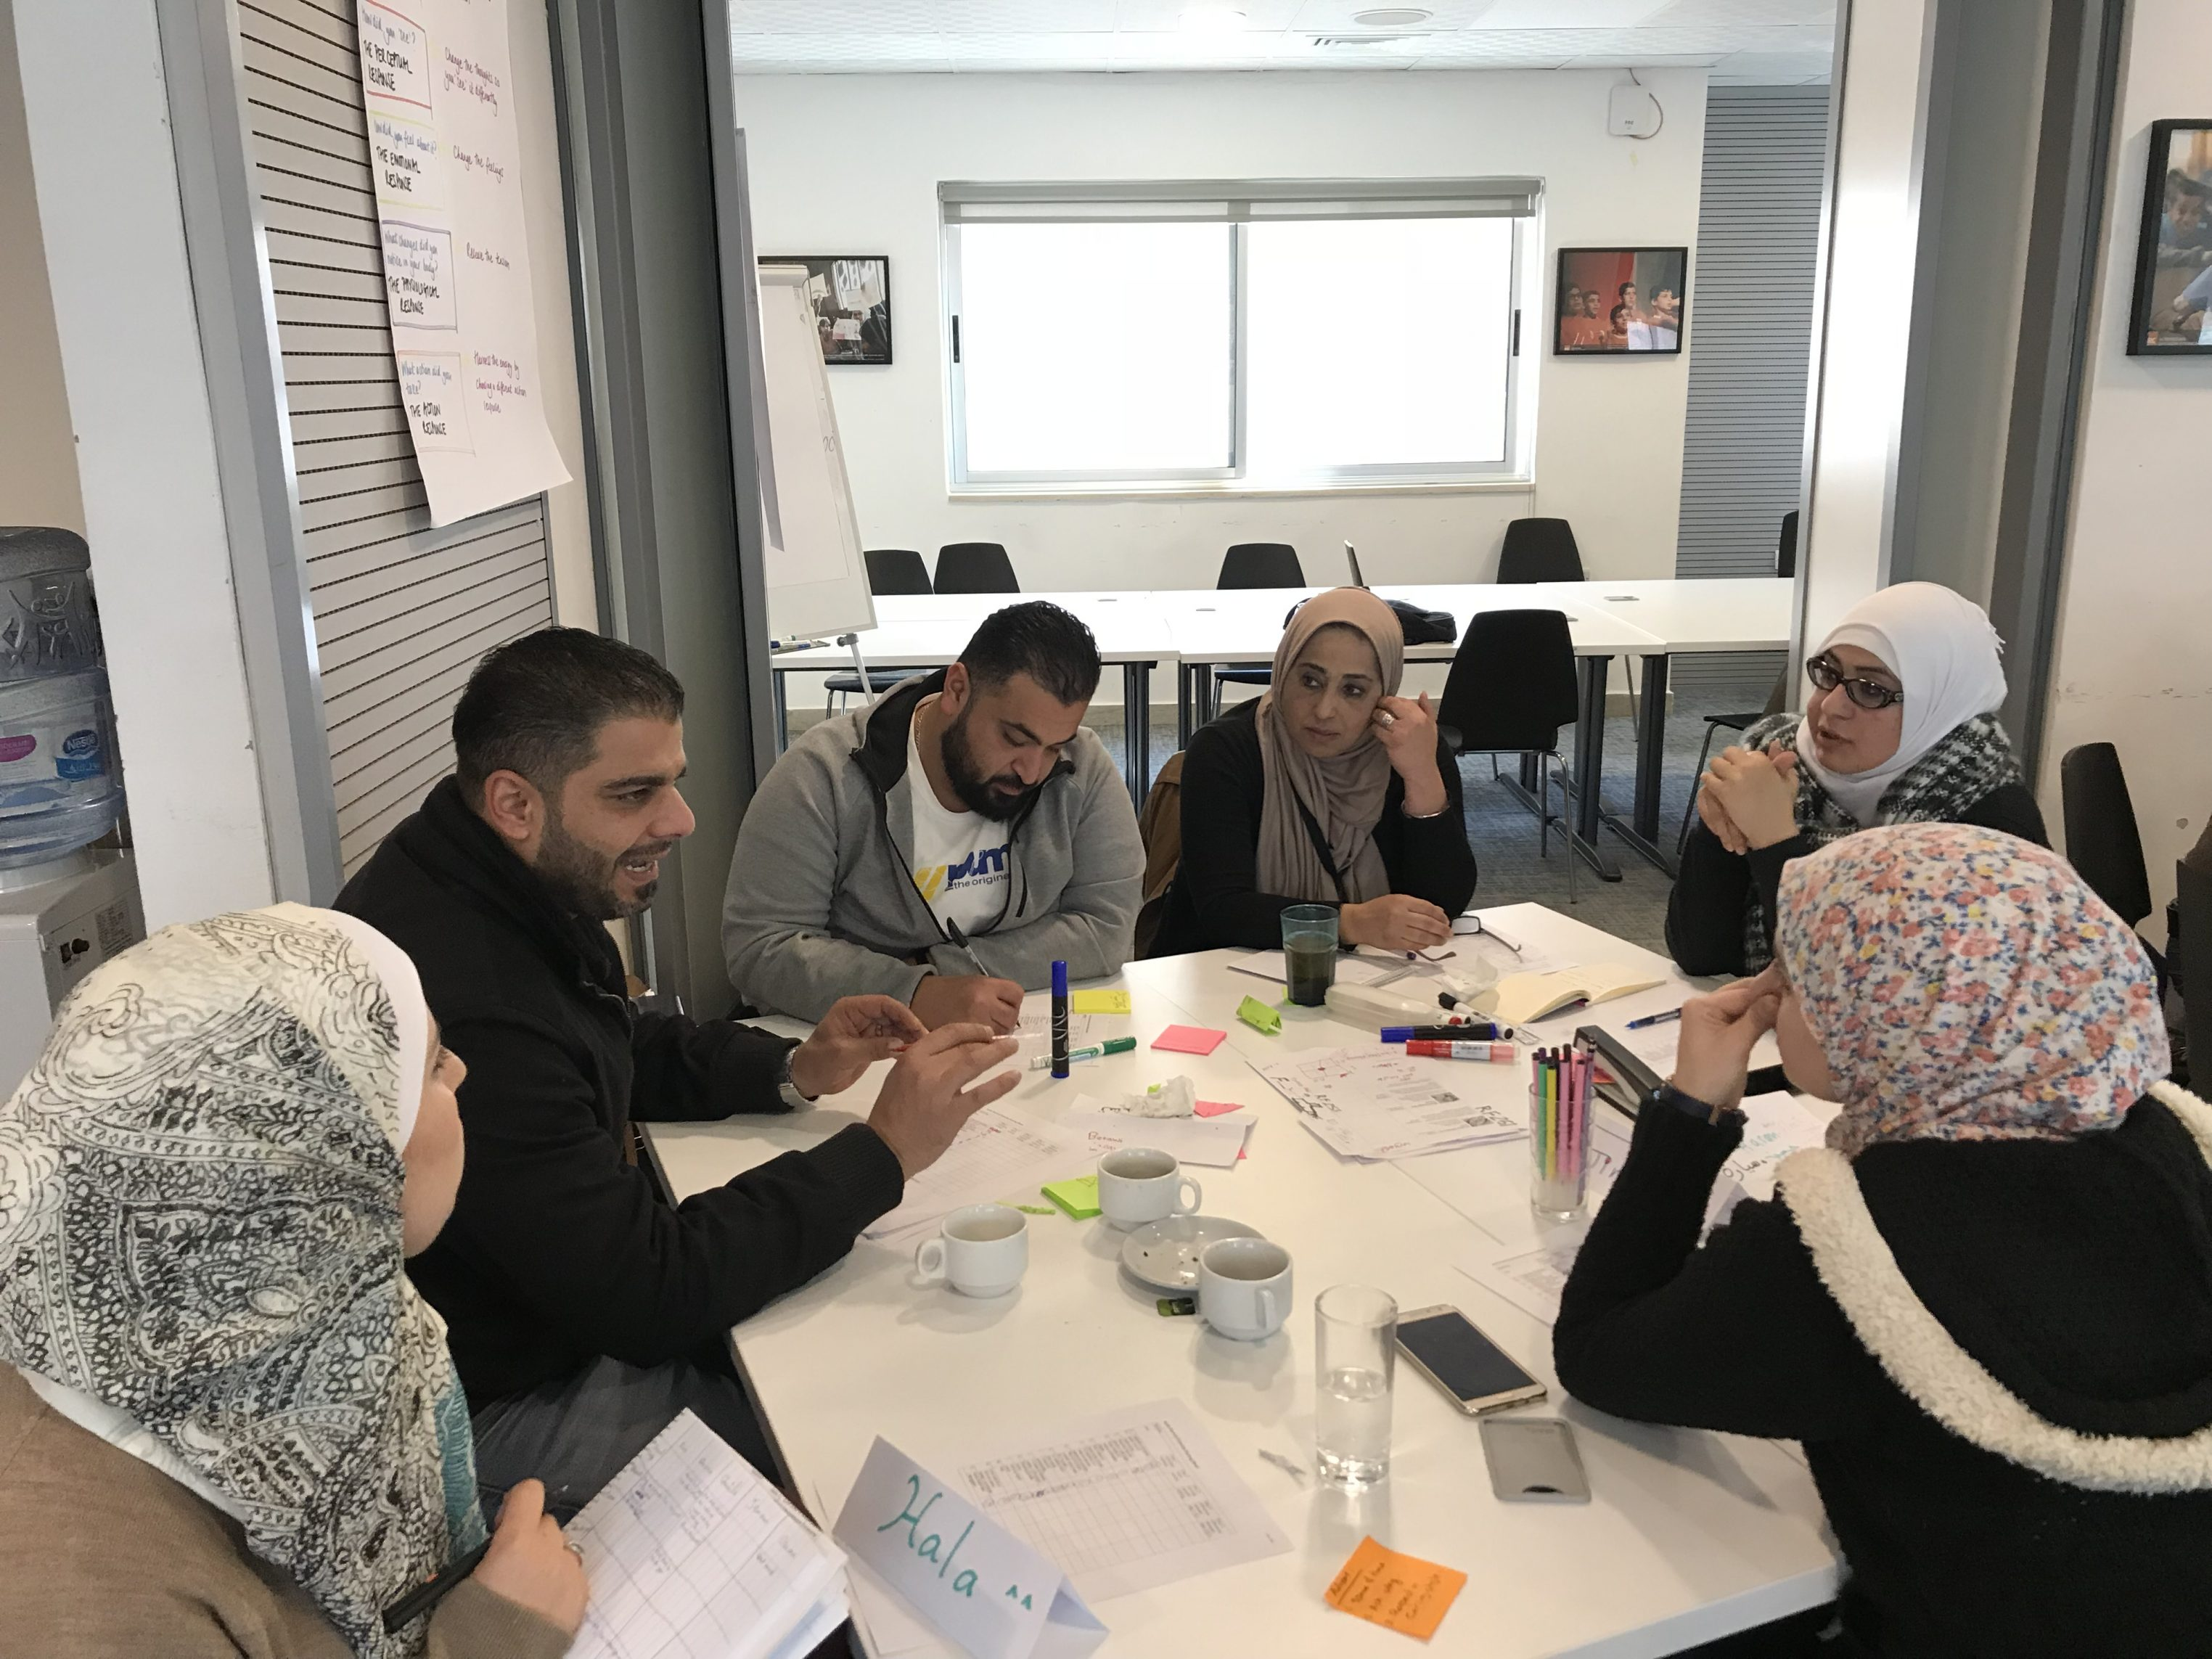 The Norwegian Refugee Council Using Kaya To Improve Organisational Learning